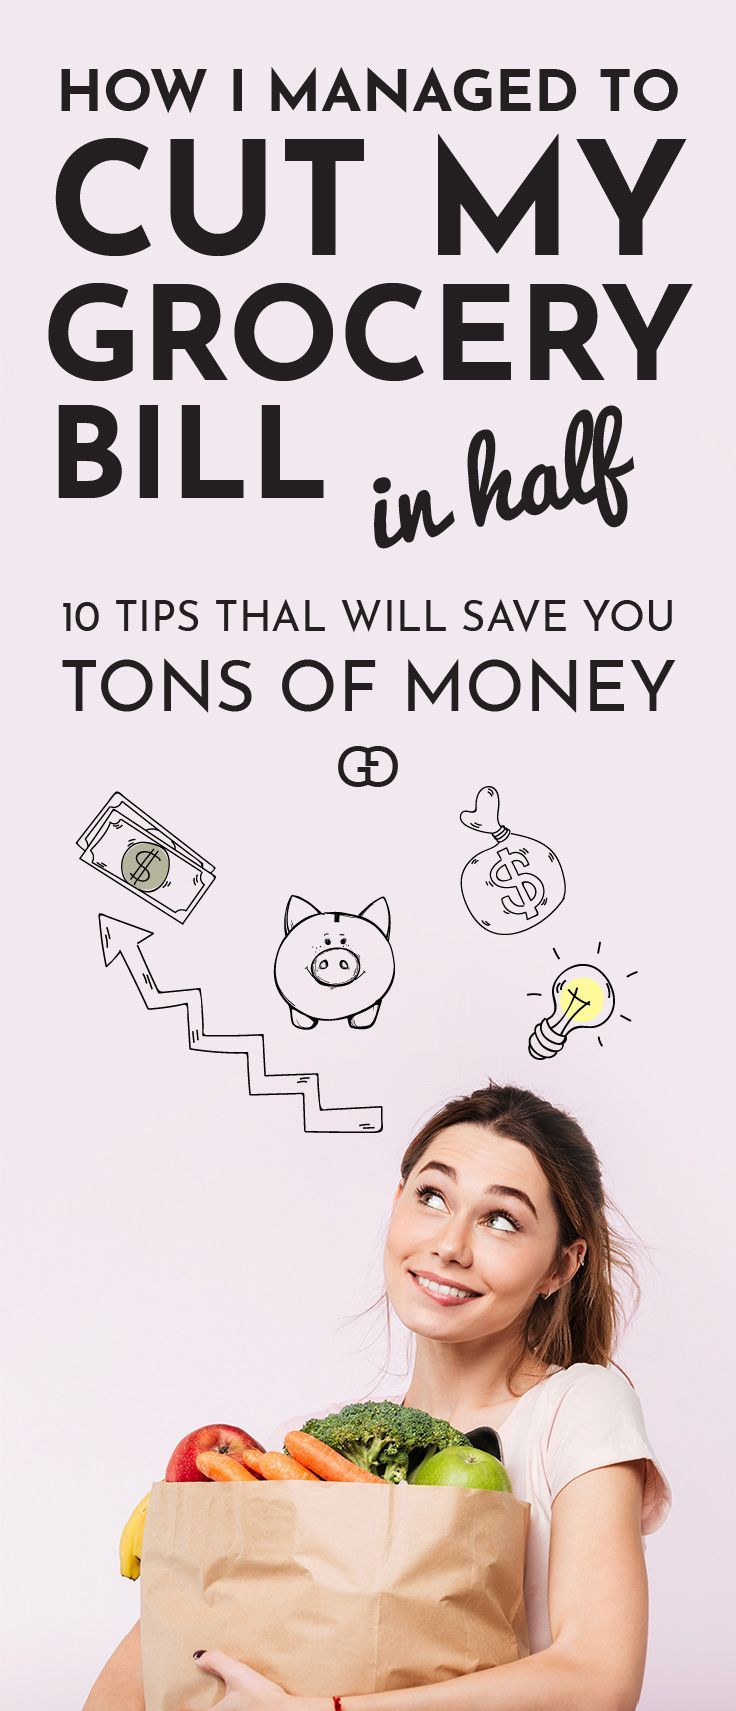 10 saving money tips to save on groceries (without coupons!). I used these hacks to save hundreds each month! By following these simple and easy steps you will be able to reduce waste, while eating amazing and healthy meals! Your family grocery budget can be small, but you can eat well. Save these tips for later!